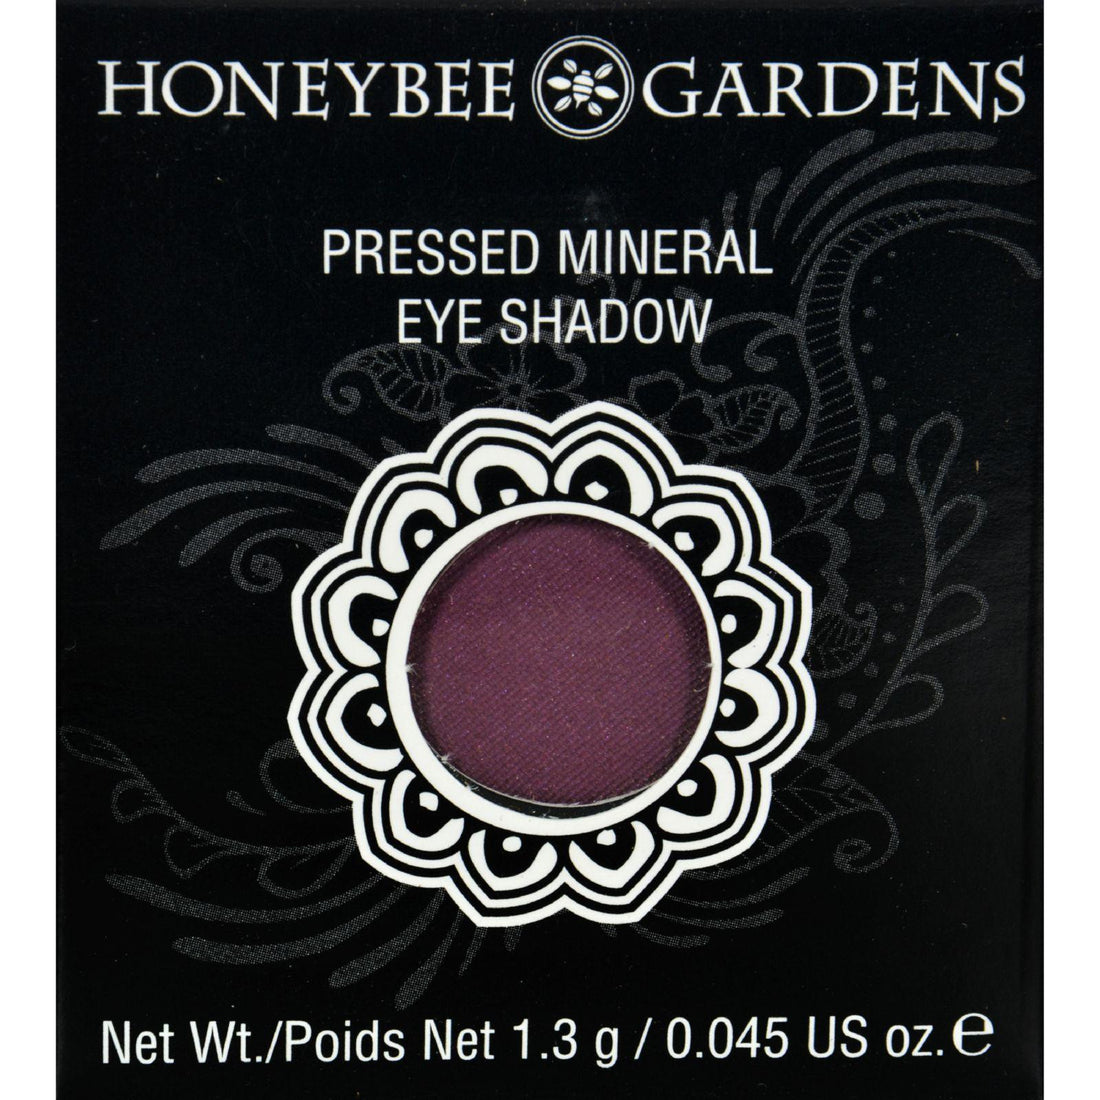 Mother Mantis: Honeybee Gardens Eye Shadow - Pressed Mineral - Daredevil - 1.3 G - 1 Case Honeybee Gardens